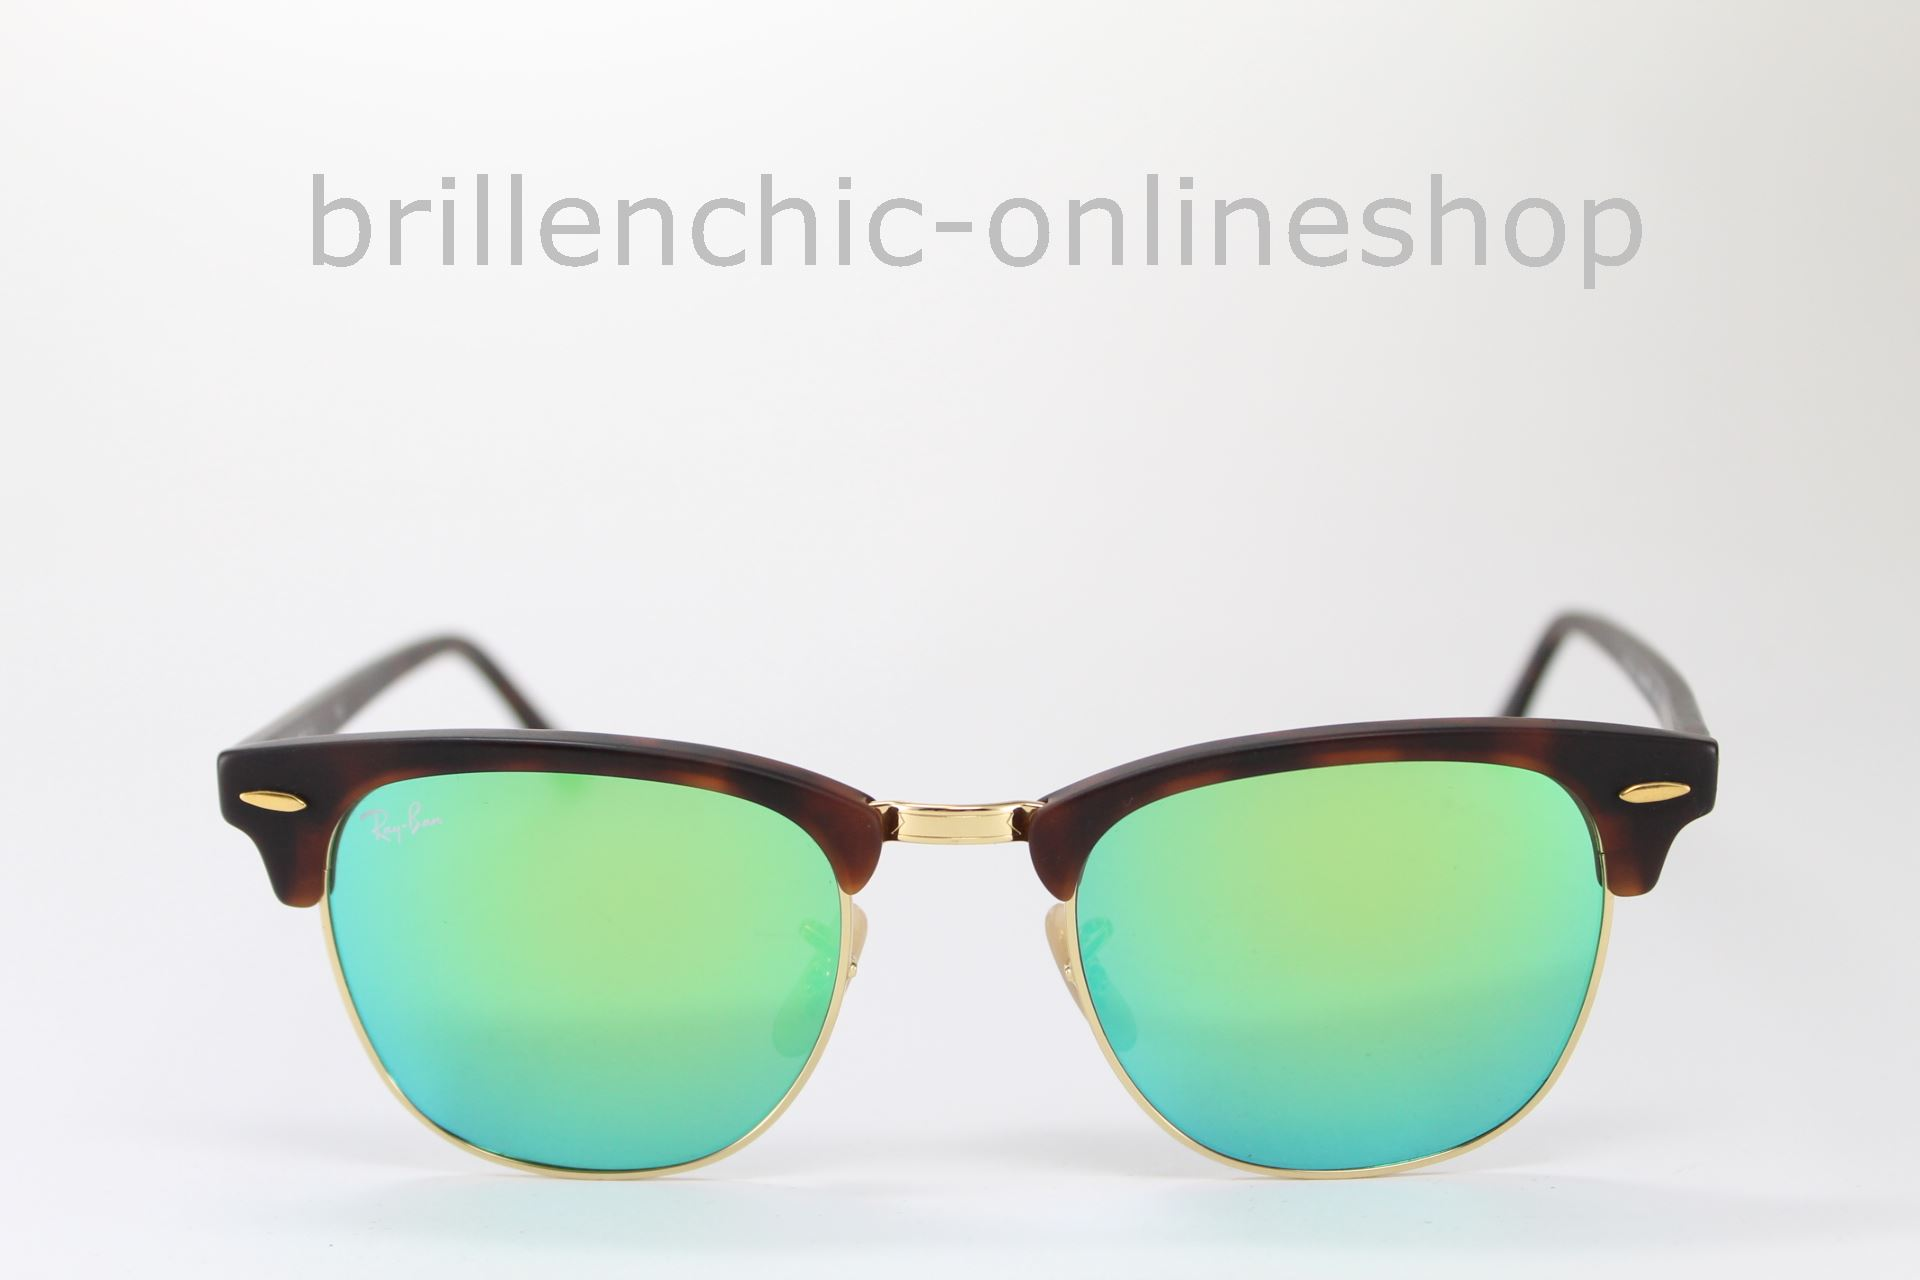 62feb5169932cc Brillenchic-onlineshop in Berlin - Ray Ban CLUBMASTER RB 3016 1145 19